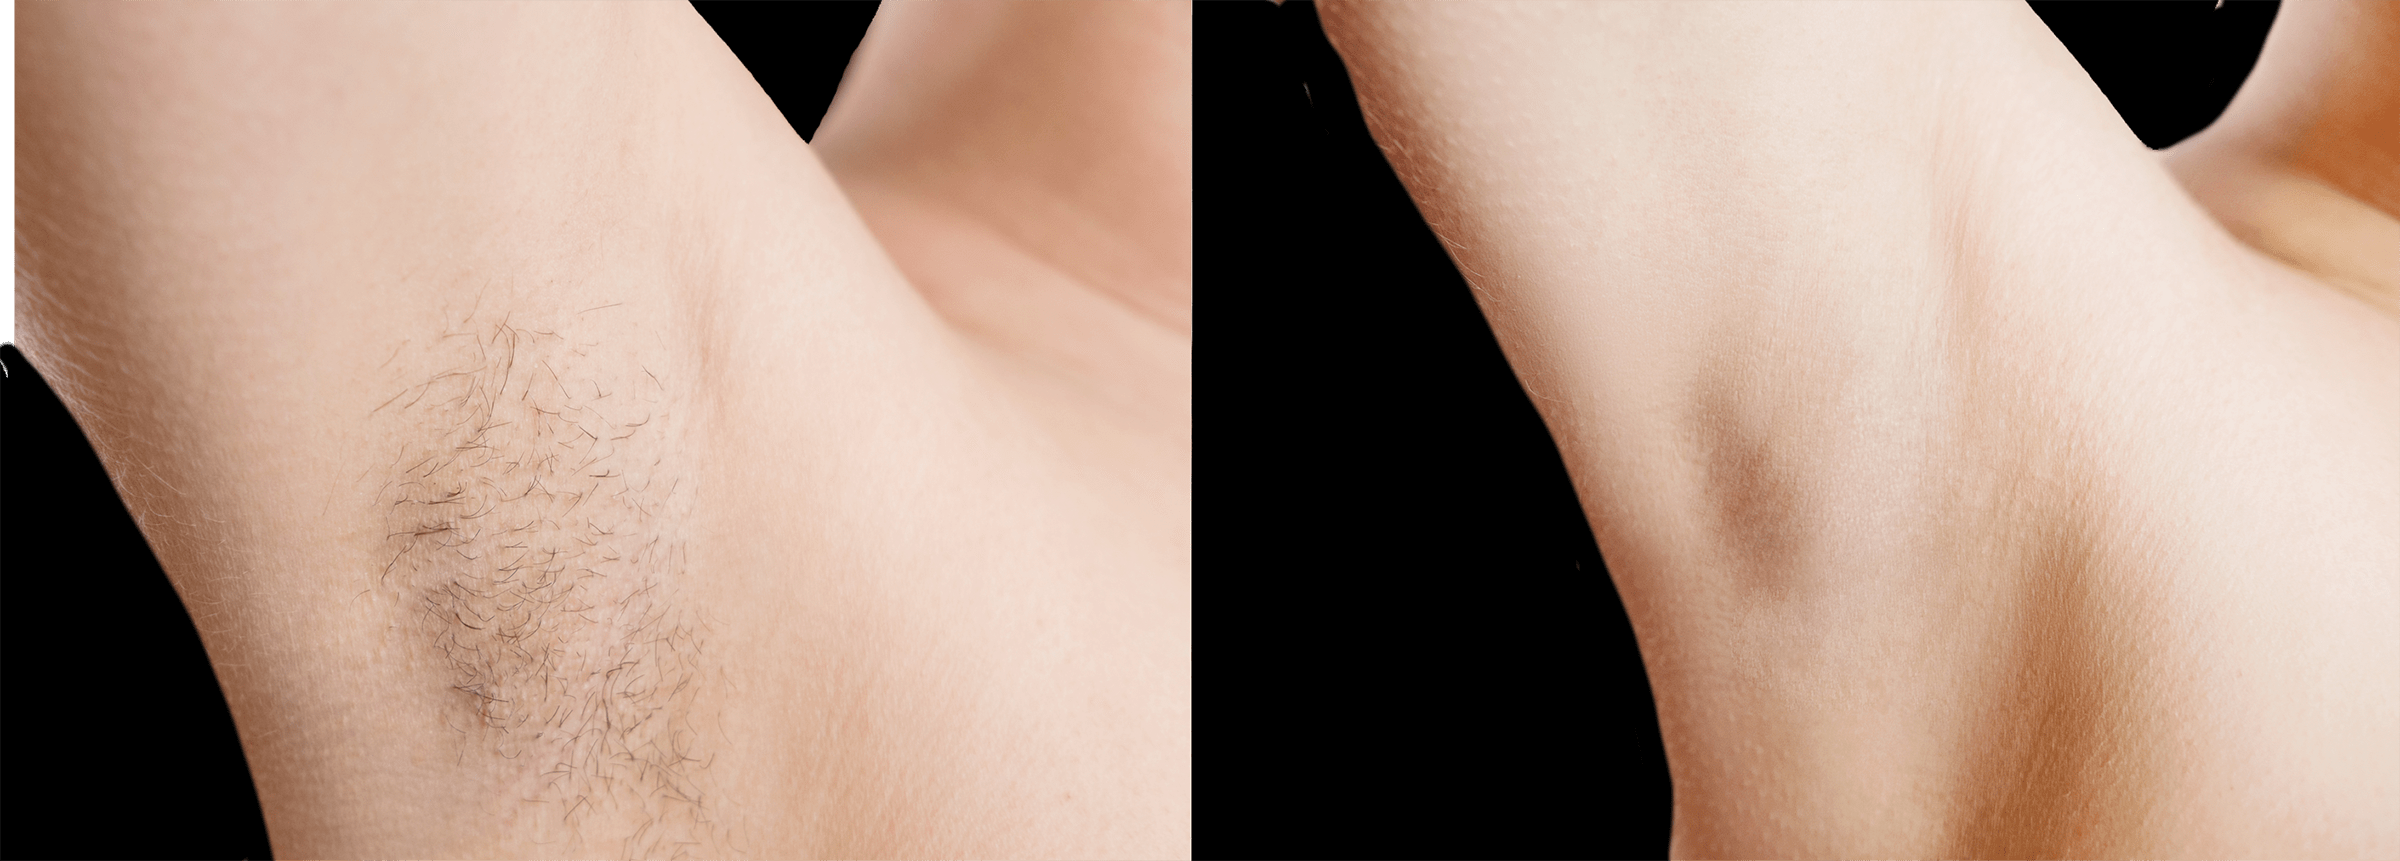 Long Island hair removal before and after